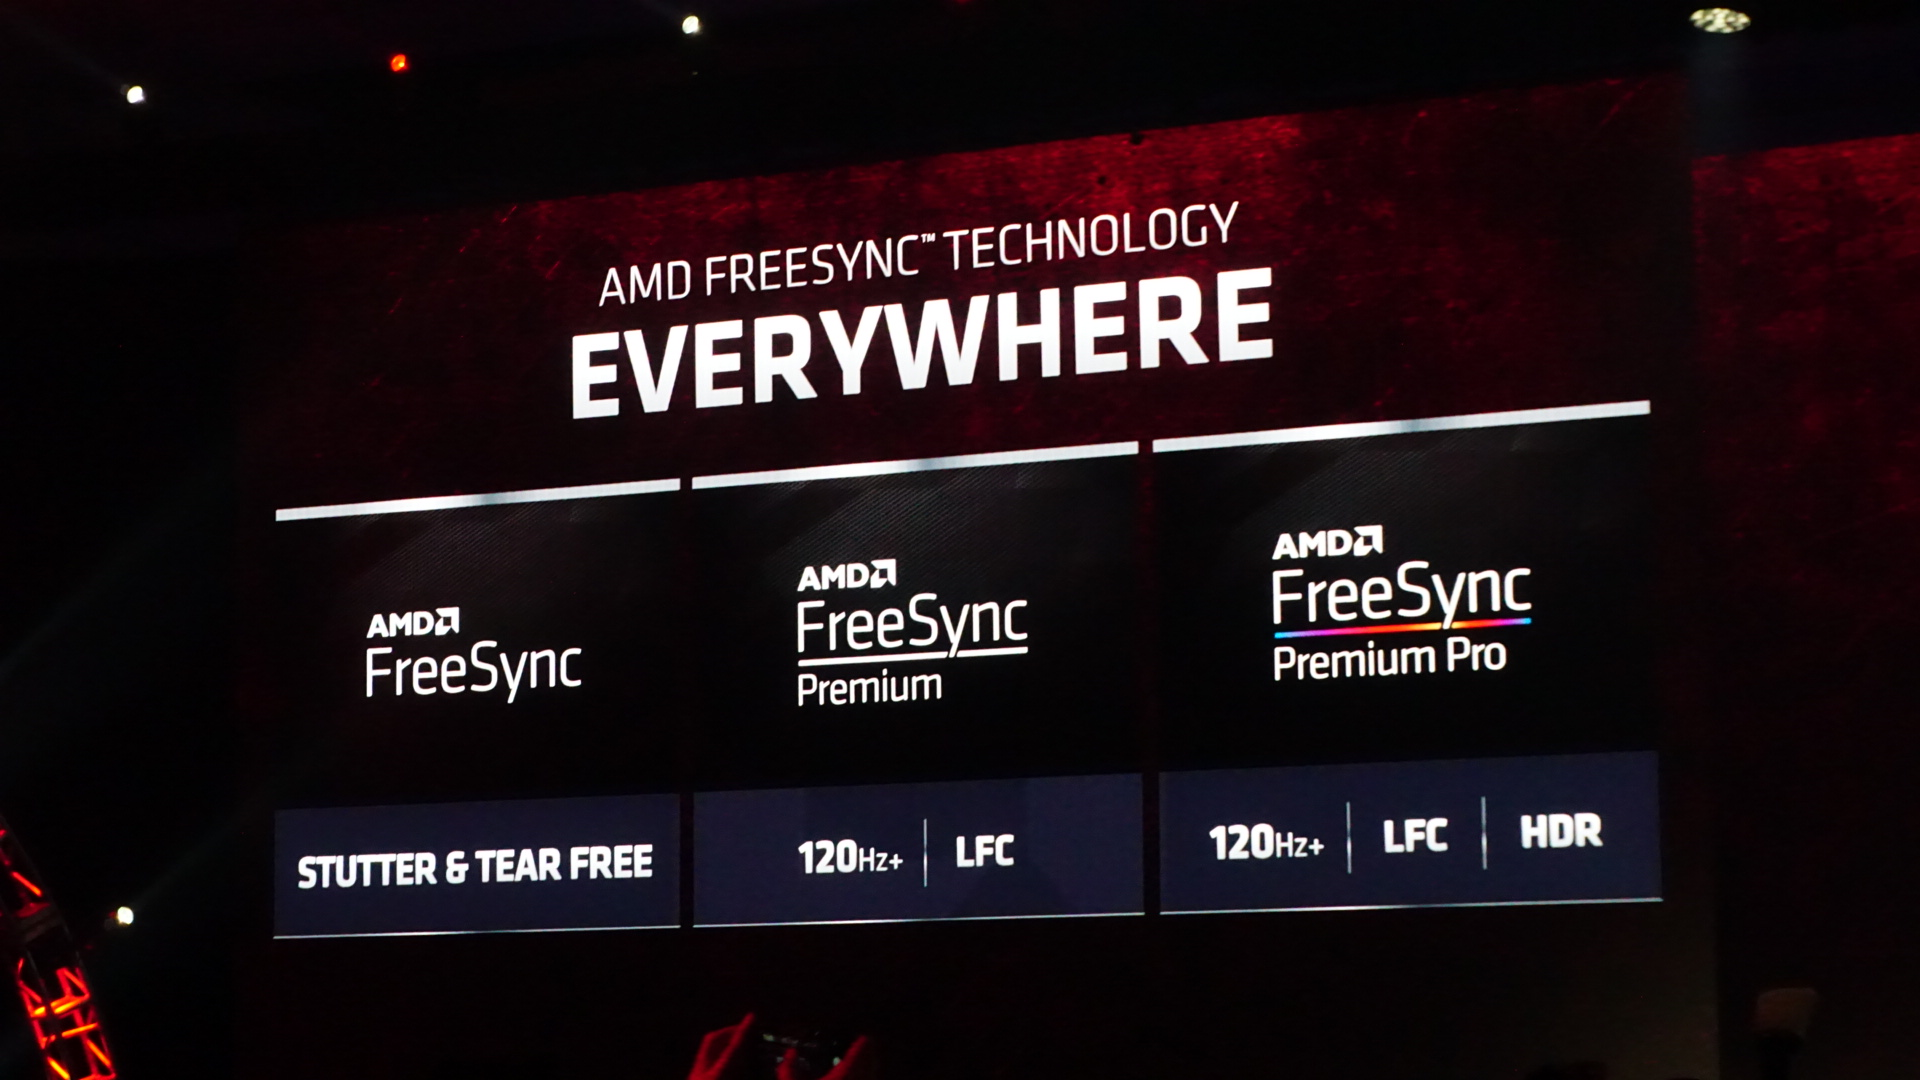 Amd Reclassifies The Freesync Tiers With Freesync Freesync Premium And Freesync Premium Pro Blur Busters